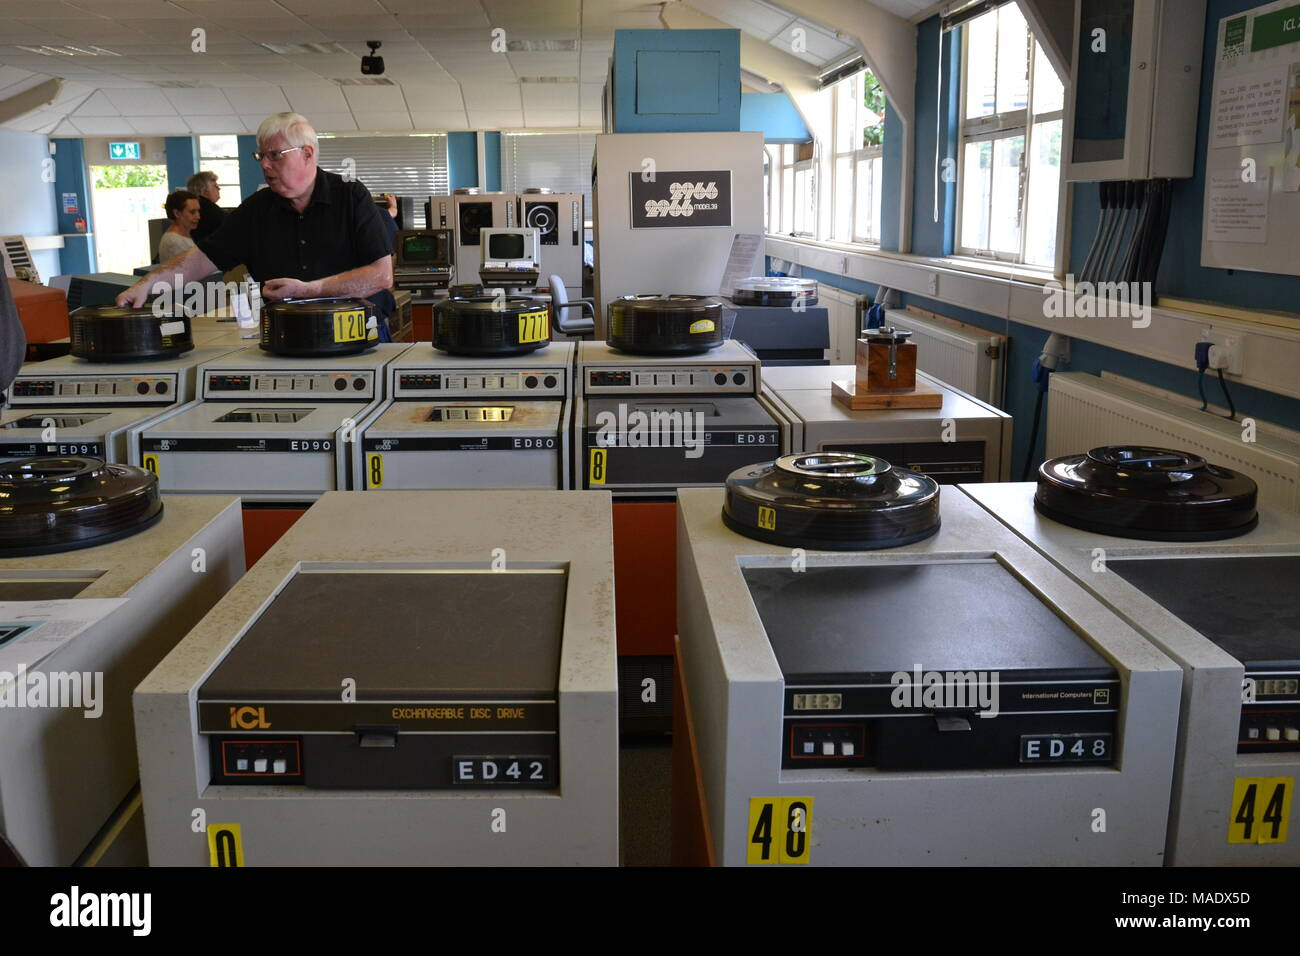 Early computers in The National Museum of Computing at Bletchley Park, near Milton Keynes, Buckinghamshire, England, UK - Stock Image